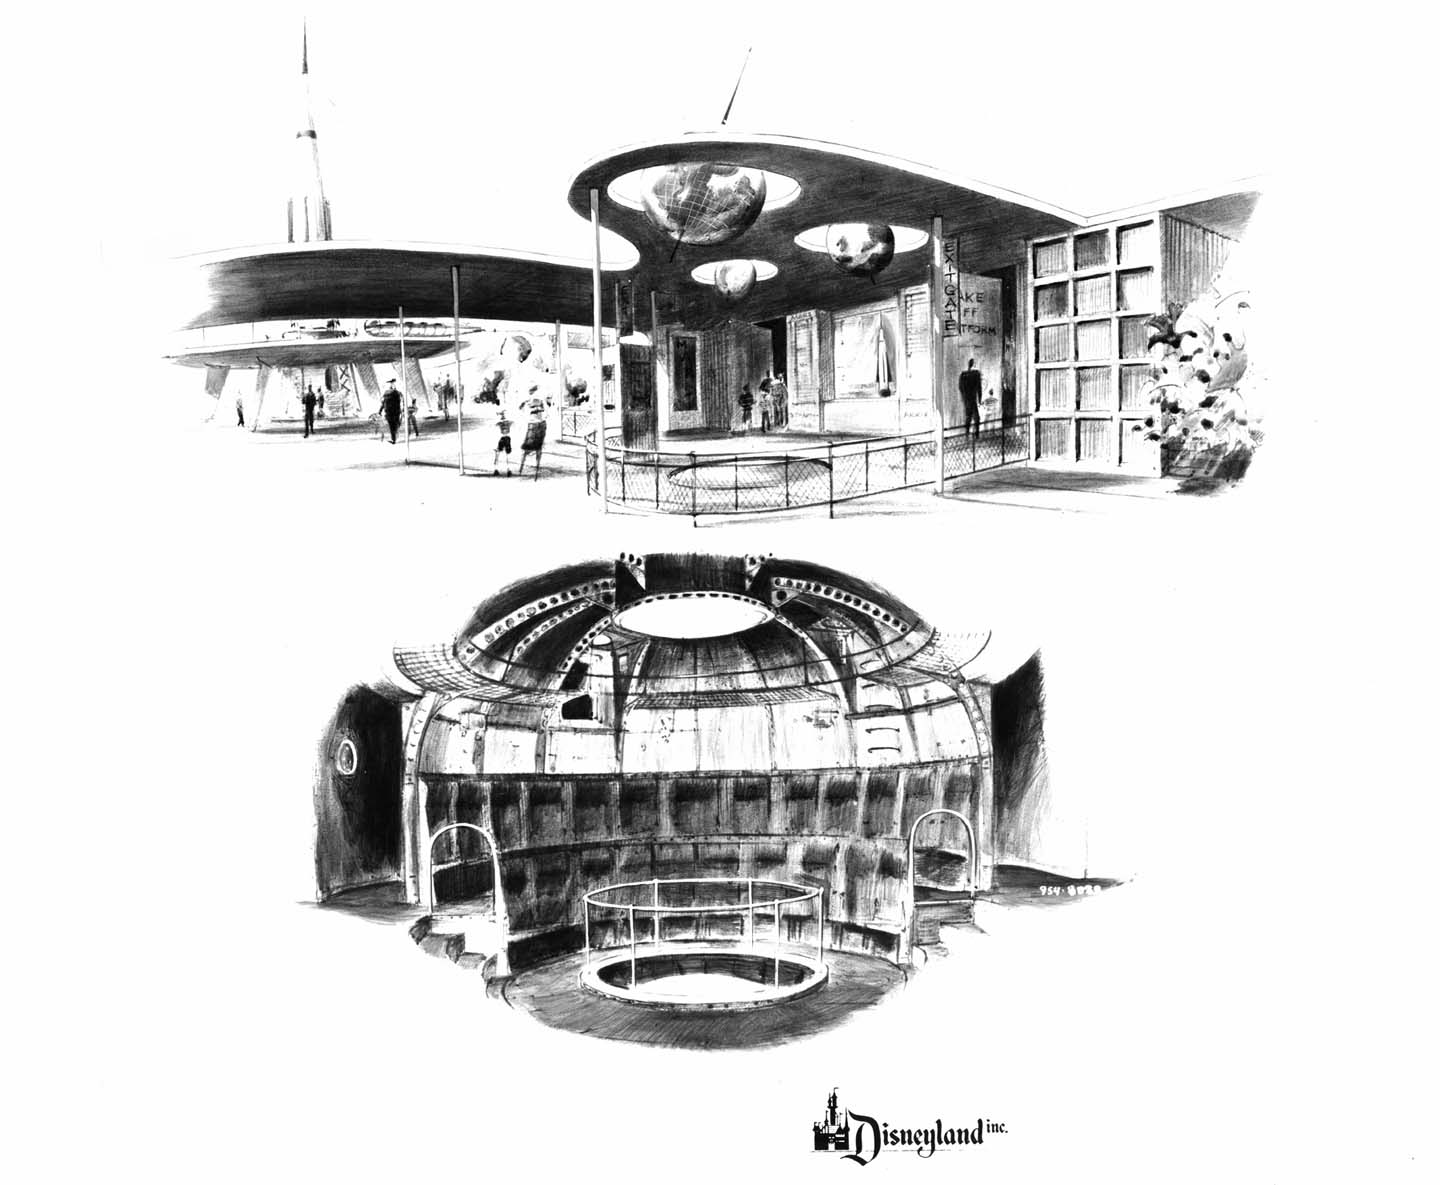 Futuristic Buildings Drawings Still Look Futuristic And